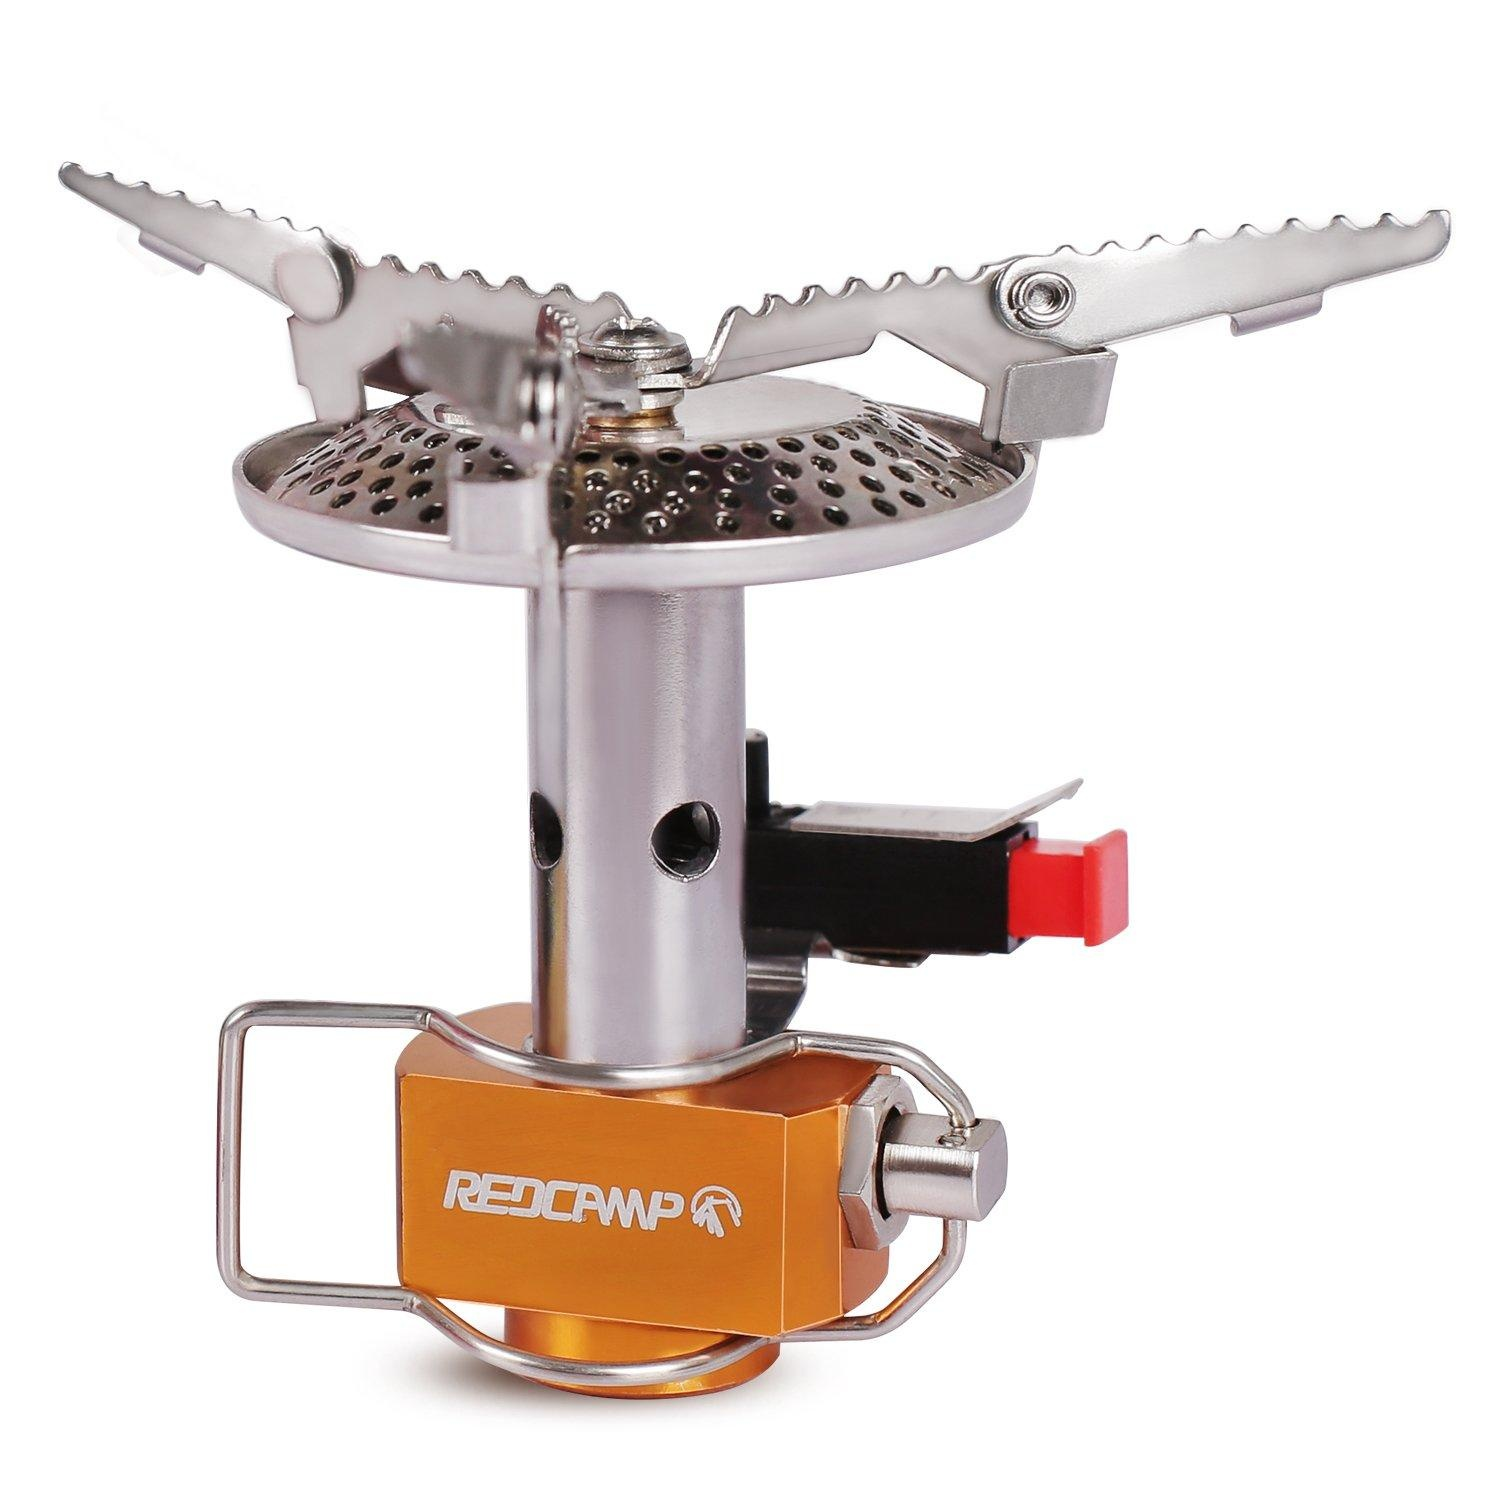 Online store redcamp mini portable camping stove for Propane stove left on overnight